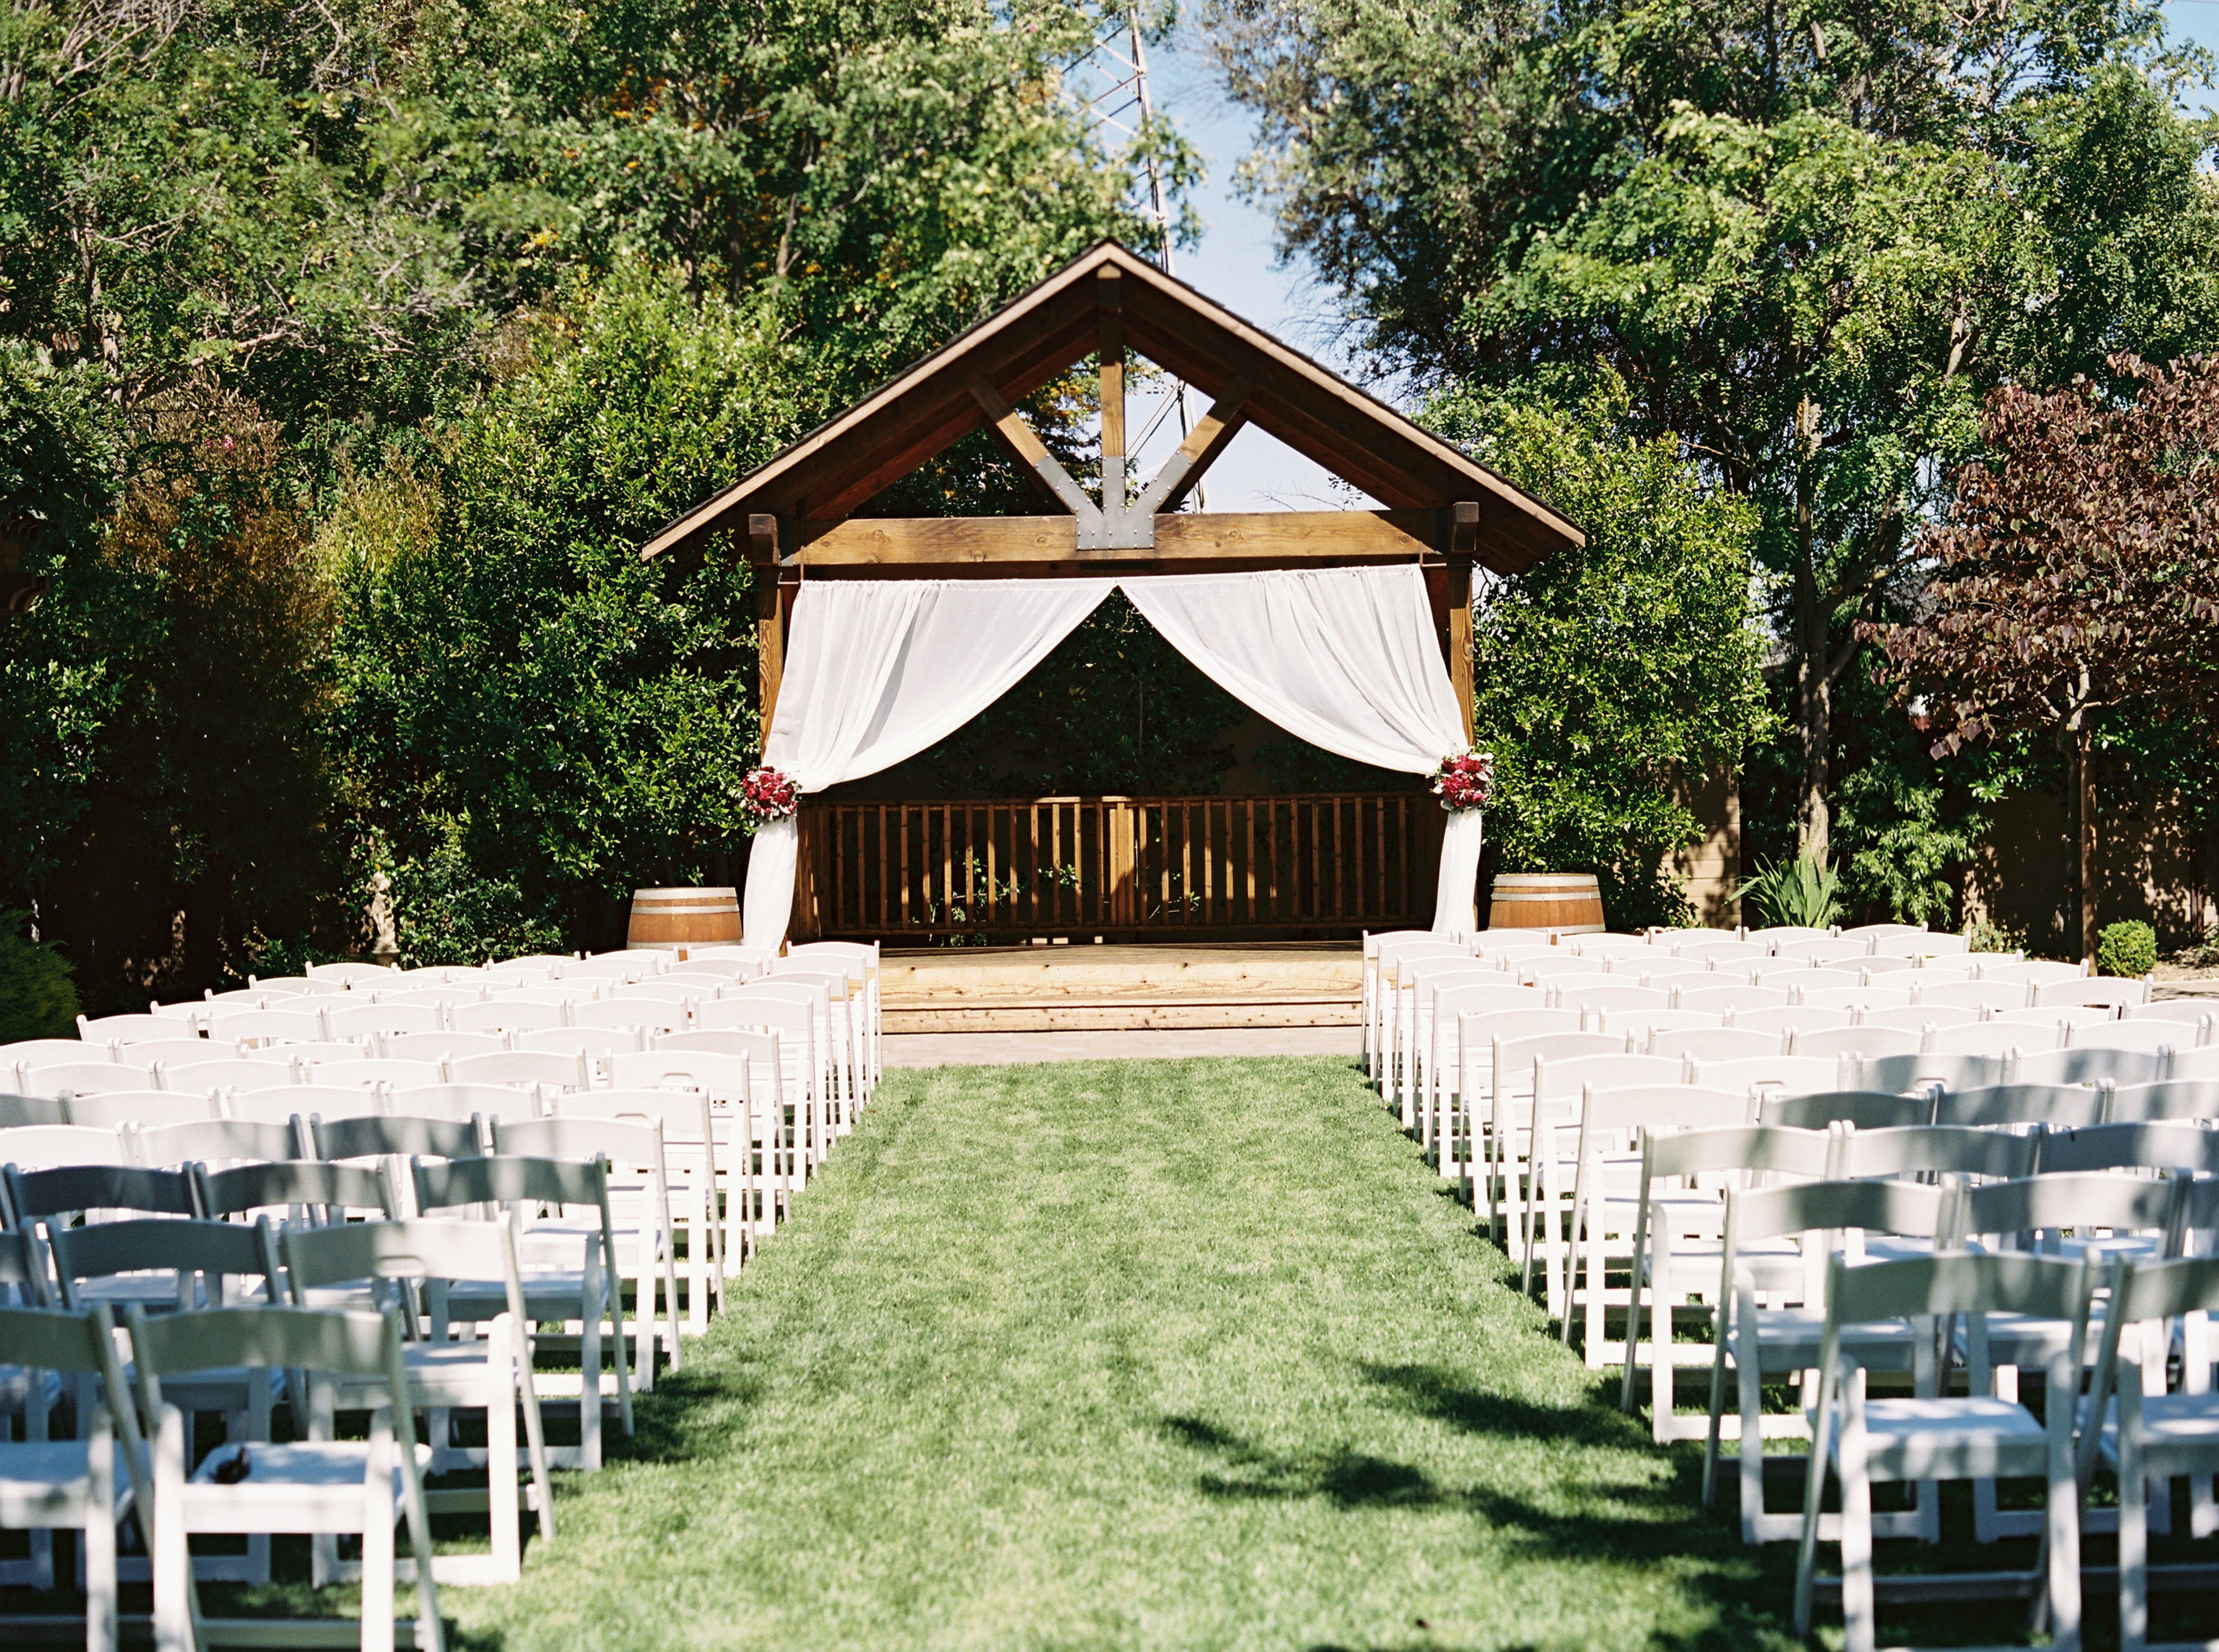 Crooked-vine-winery-wedding-in-livermore-california-66.jpg